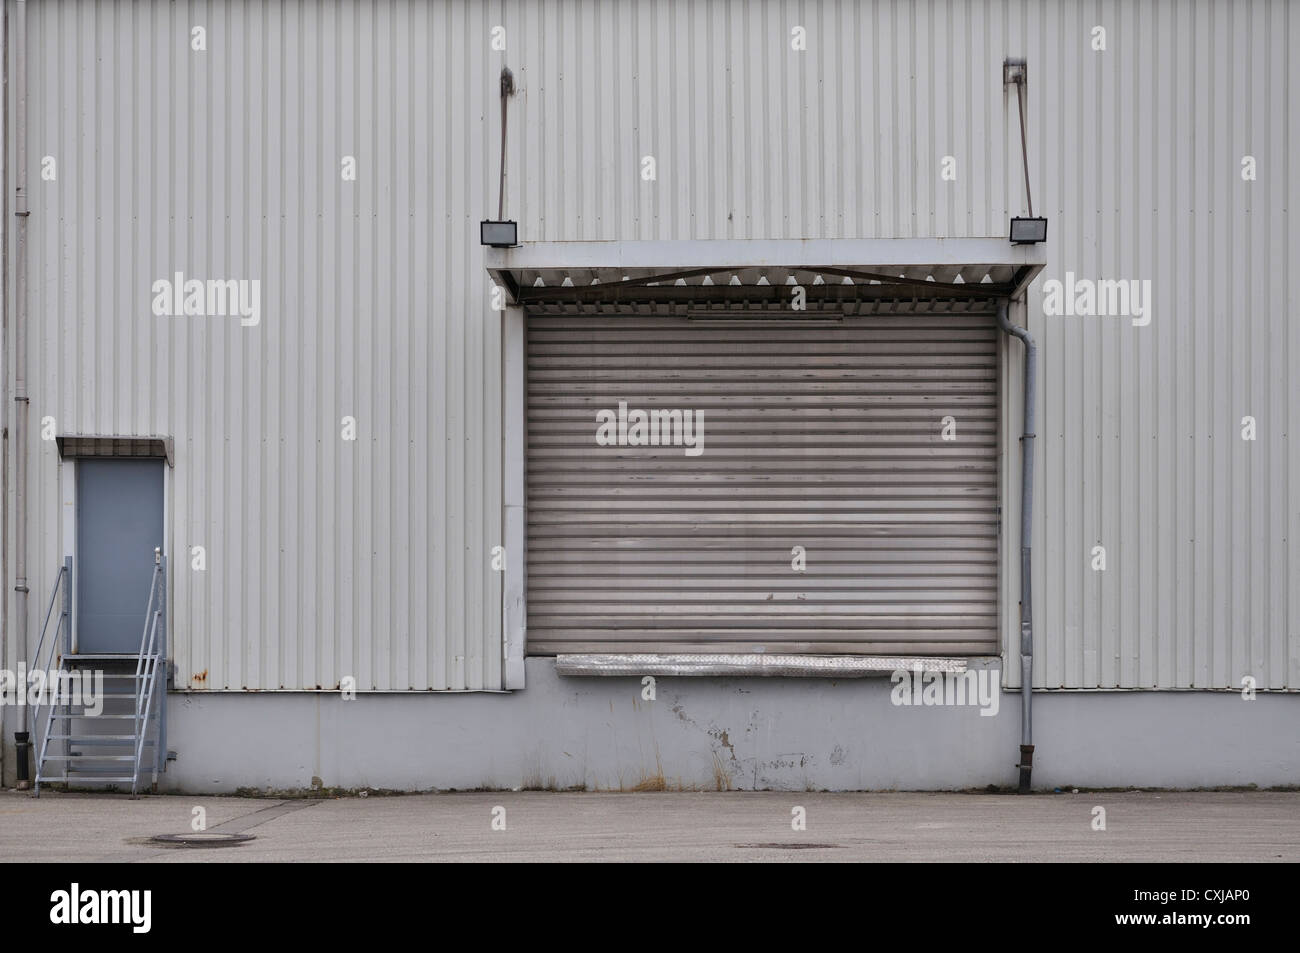 Germany, Bavaria, Ramp output of factory building - Stock Image